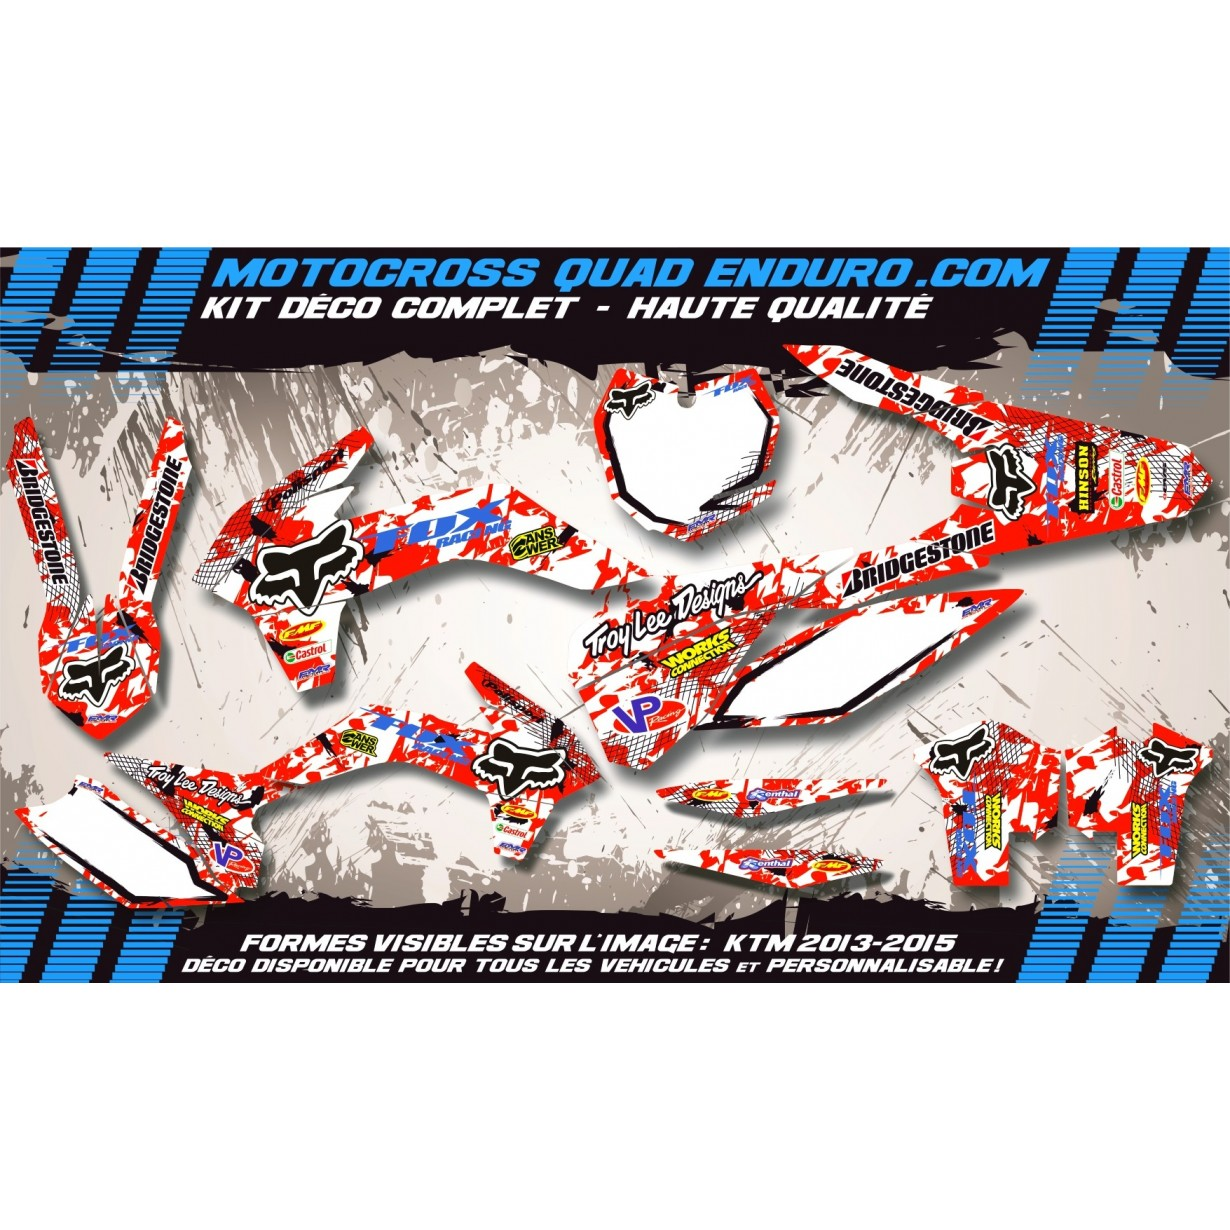 KIT DÉCO Perso 50 RR enduro 2007 FOX MA9A